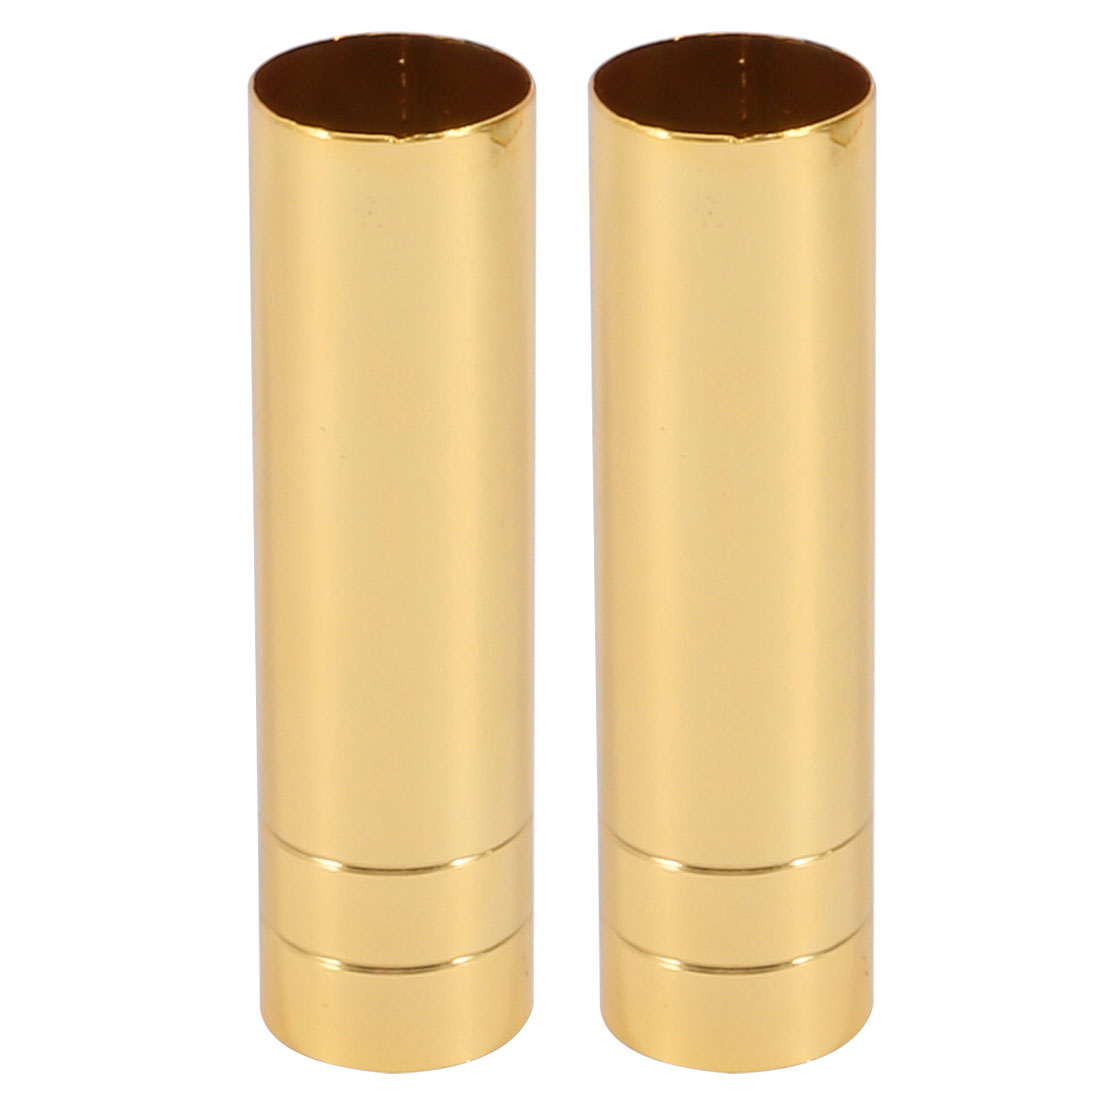 2pcs 25mmx100mm Gold Tone Metal Candle Cover Sleeves Chandelier Socket Covers